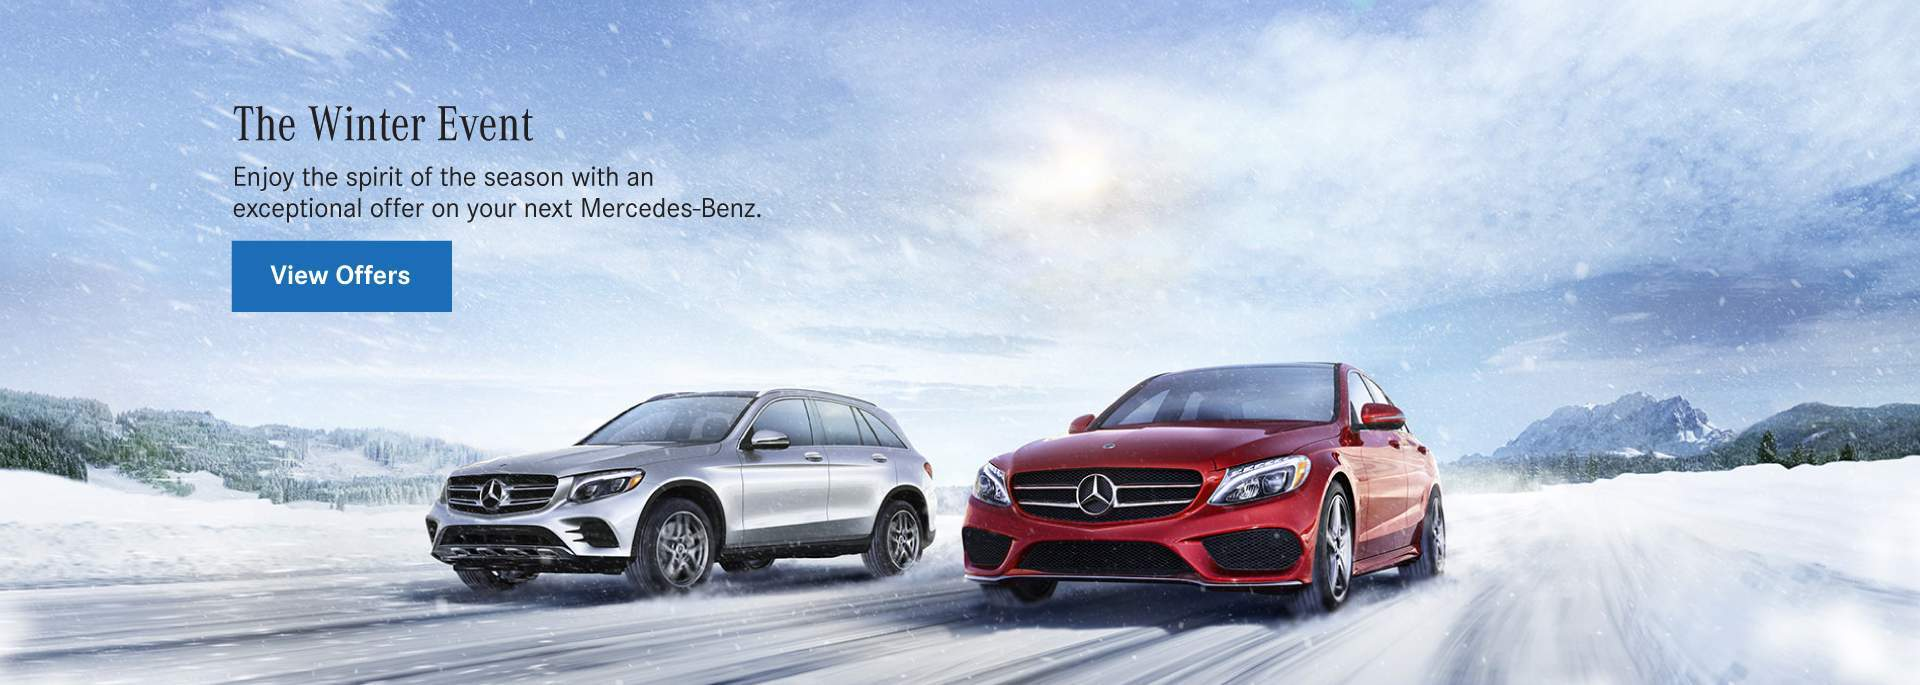 Mercedes benz dealership rochester mn used cars mercedes for Mercedes benz of rochester